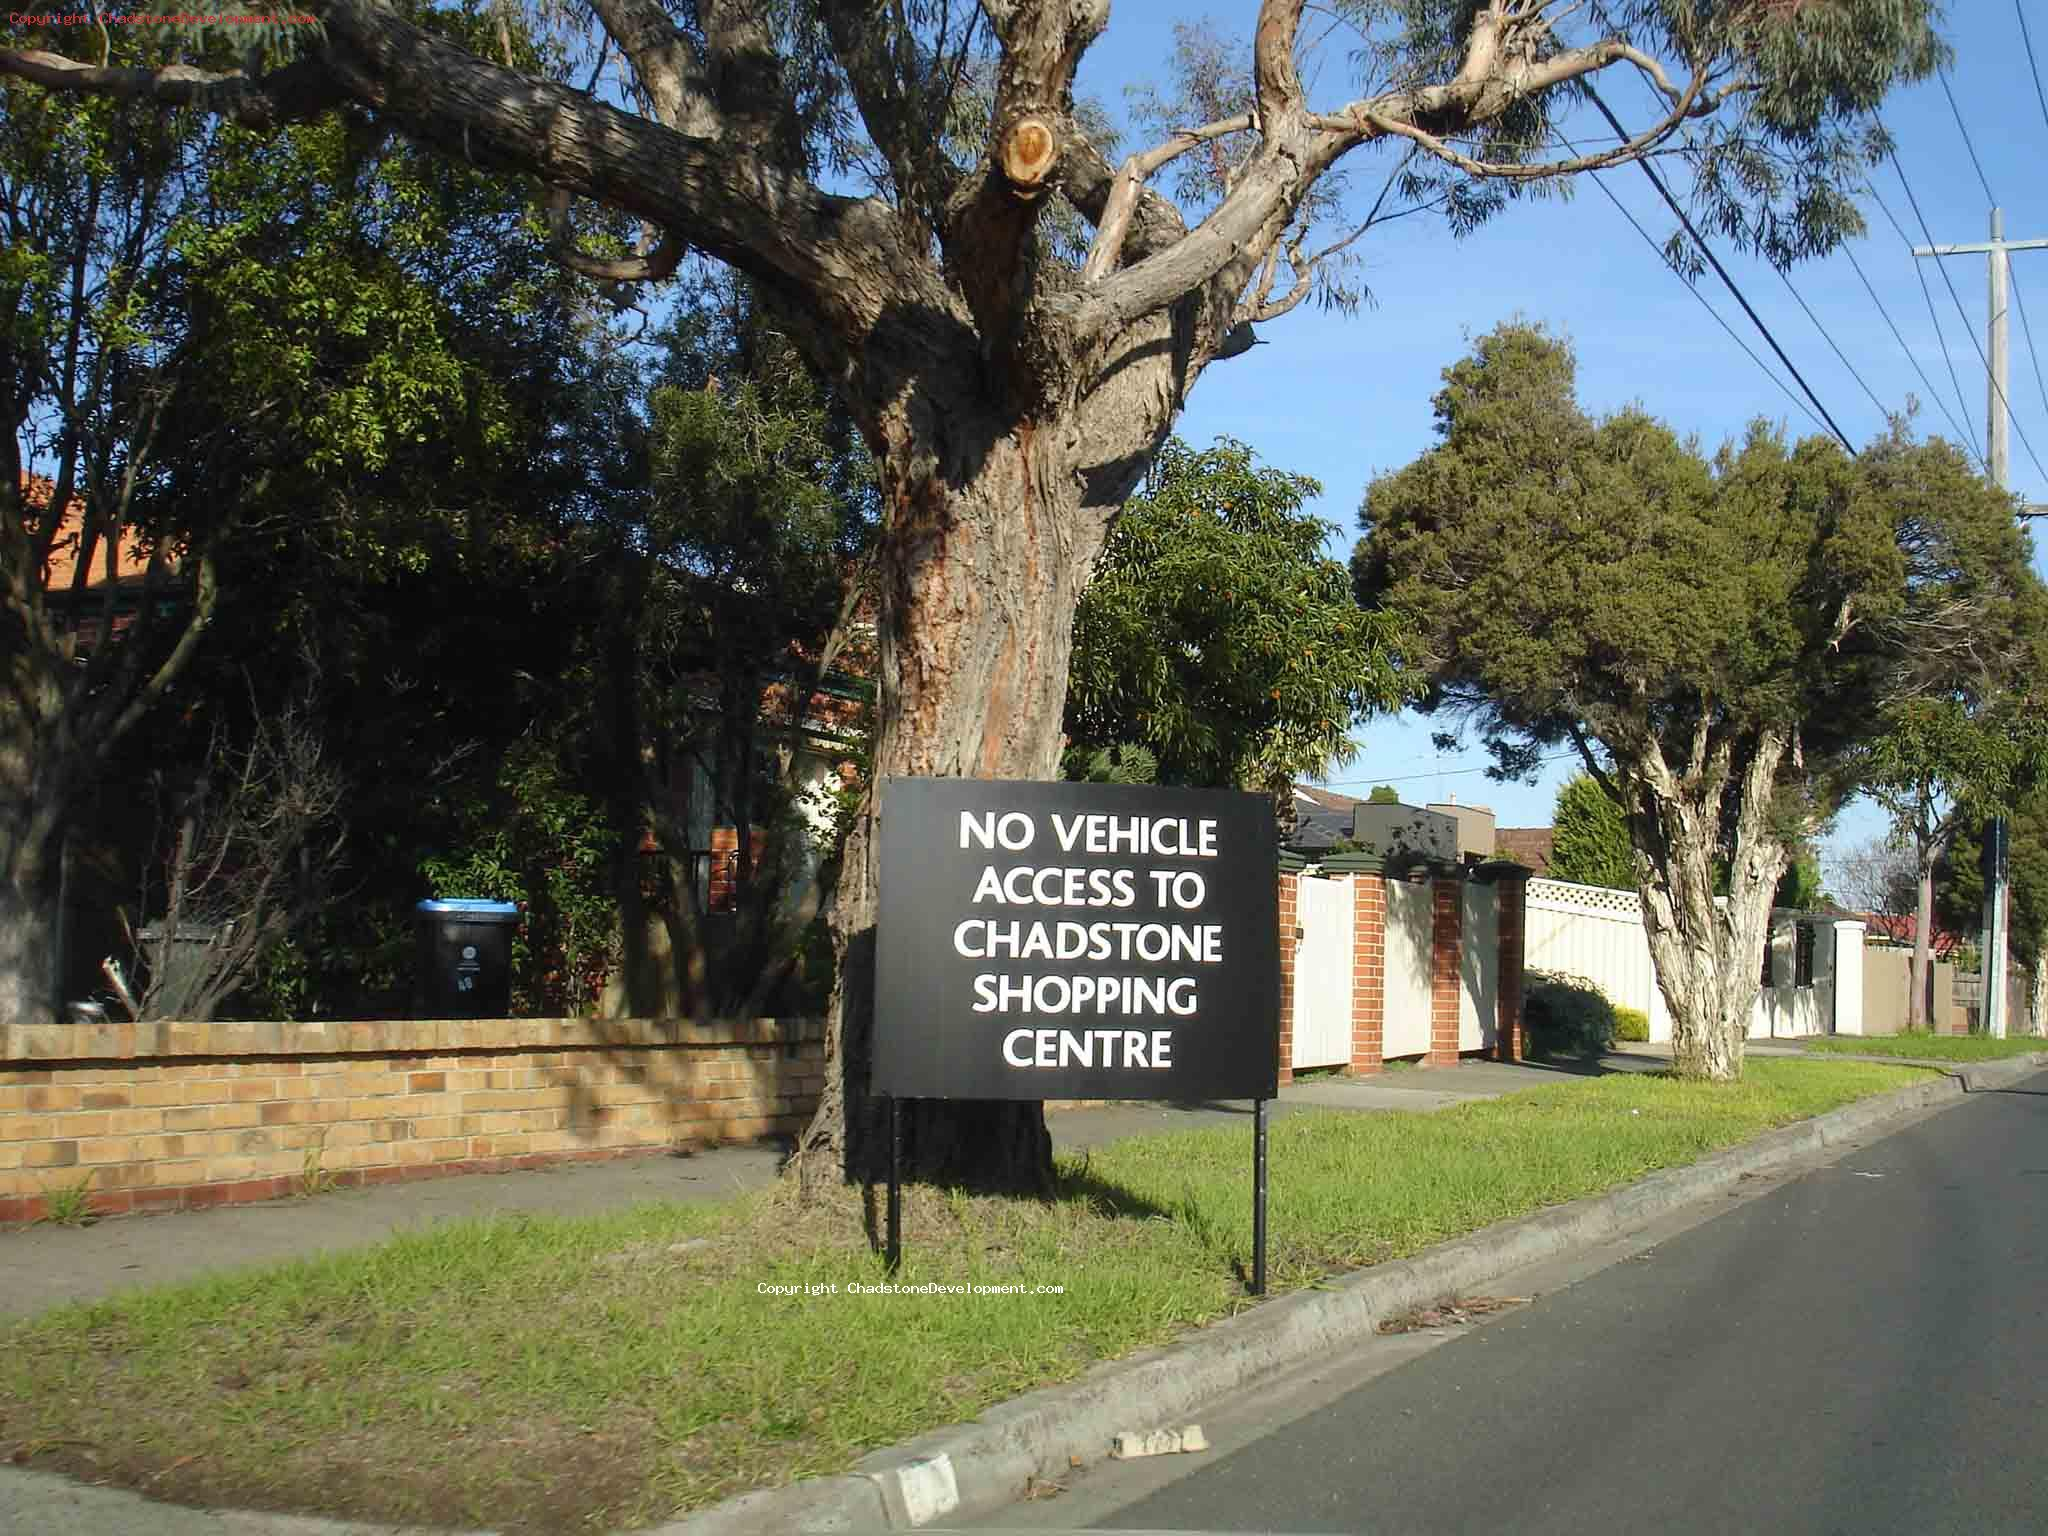 Capon St - No Vehicle access to shopping centre - Chadstone Development Discussions